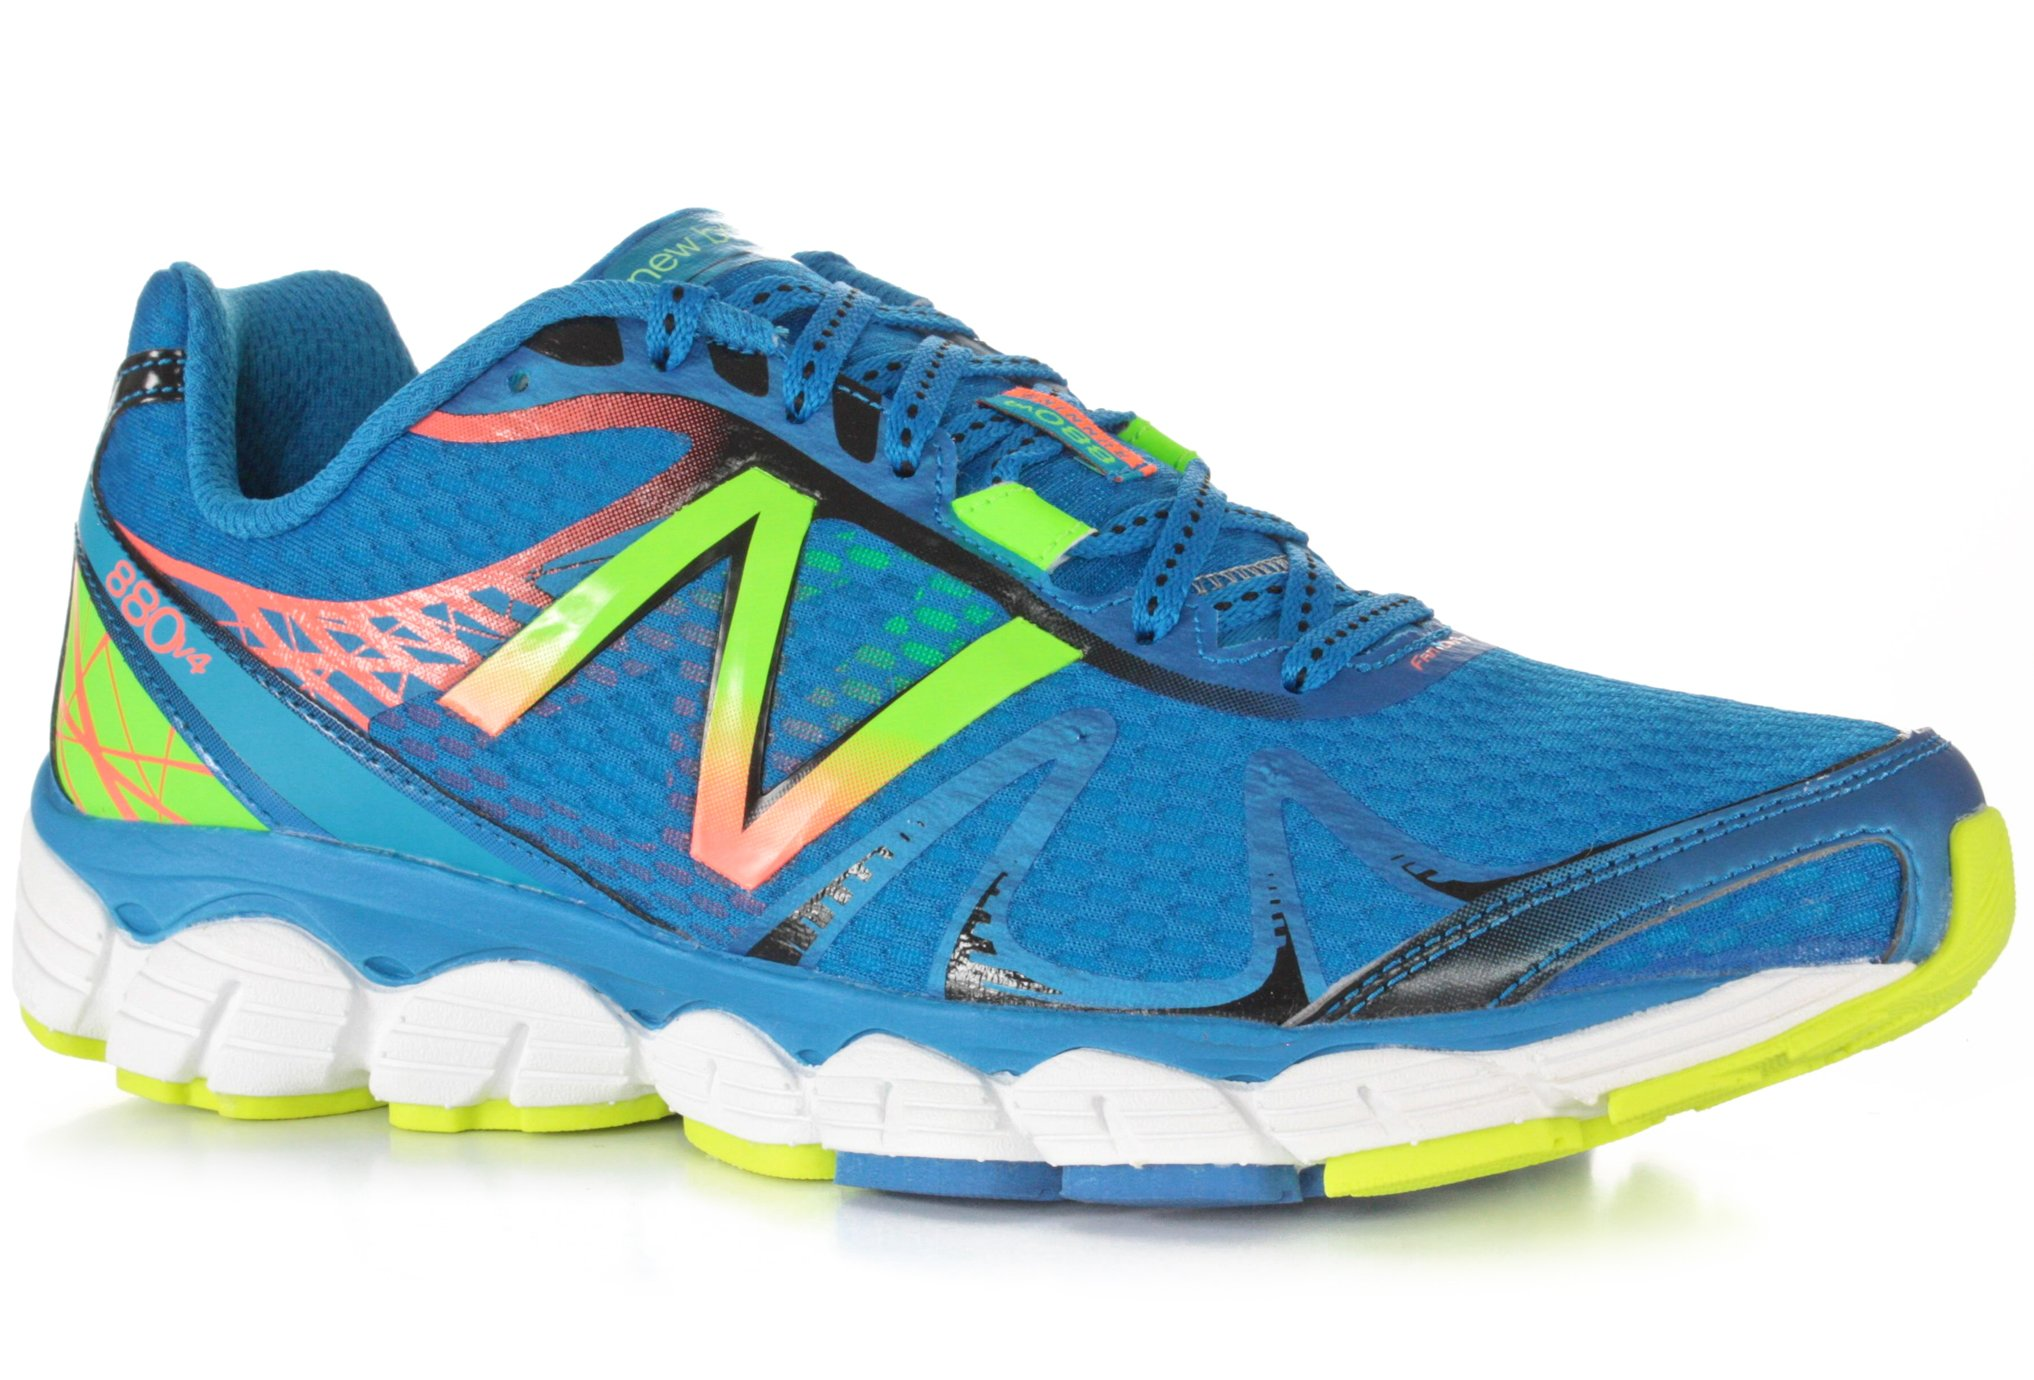 New Balance M 880 V4 - D Chaussures homme